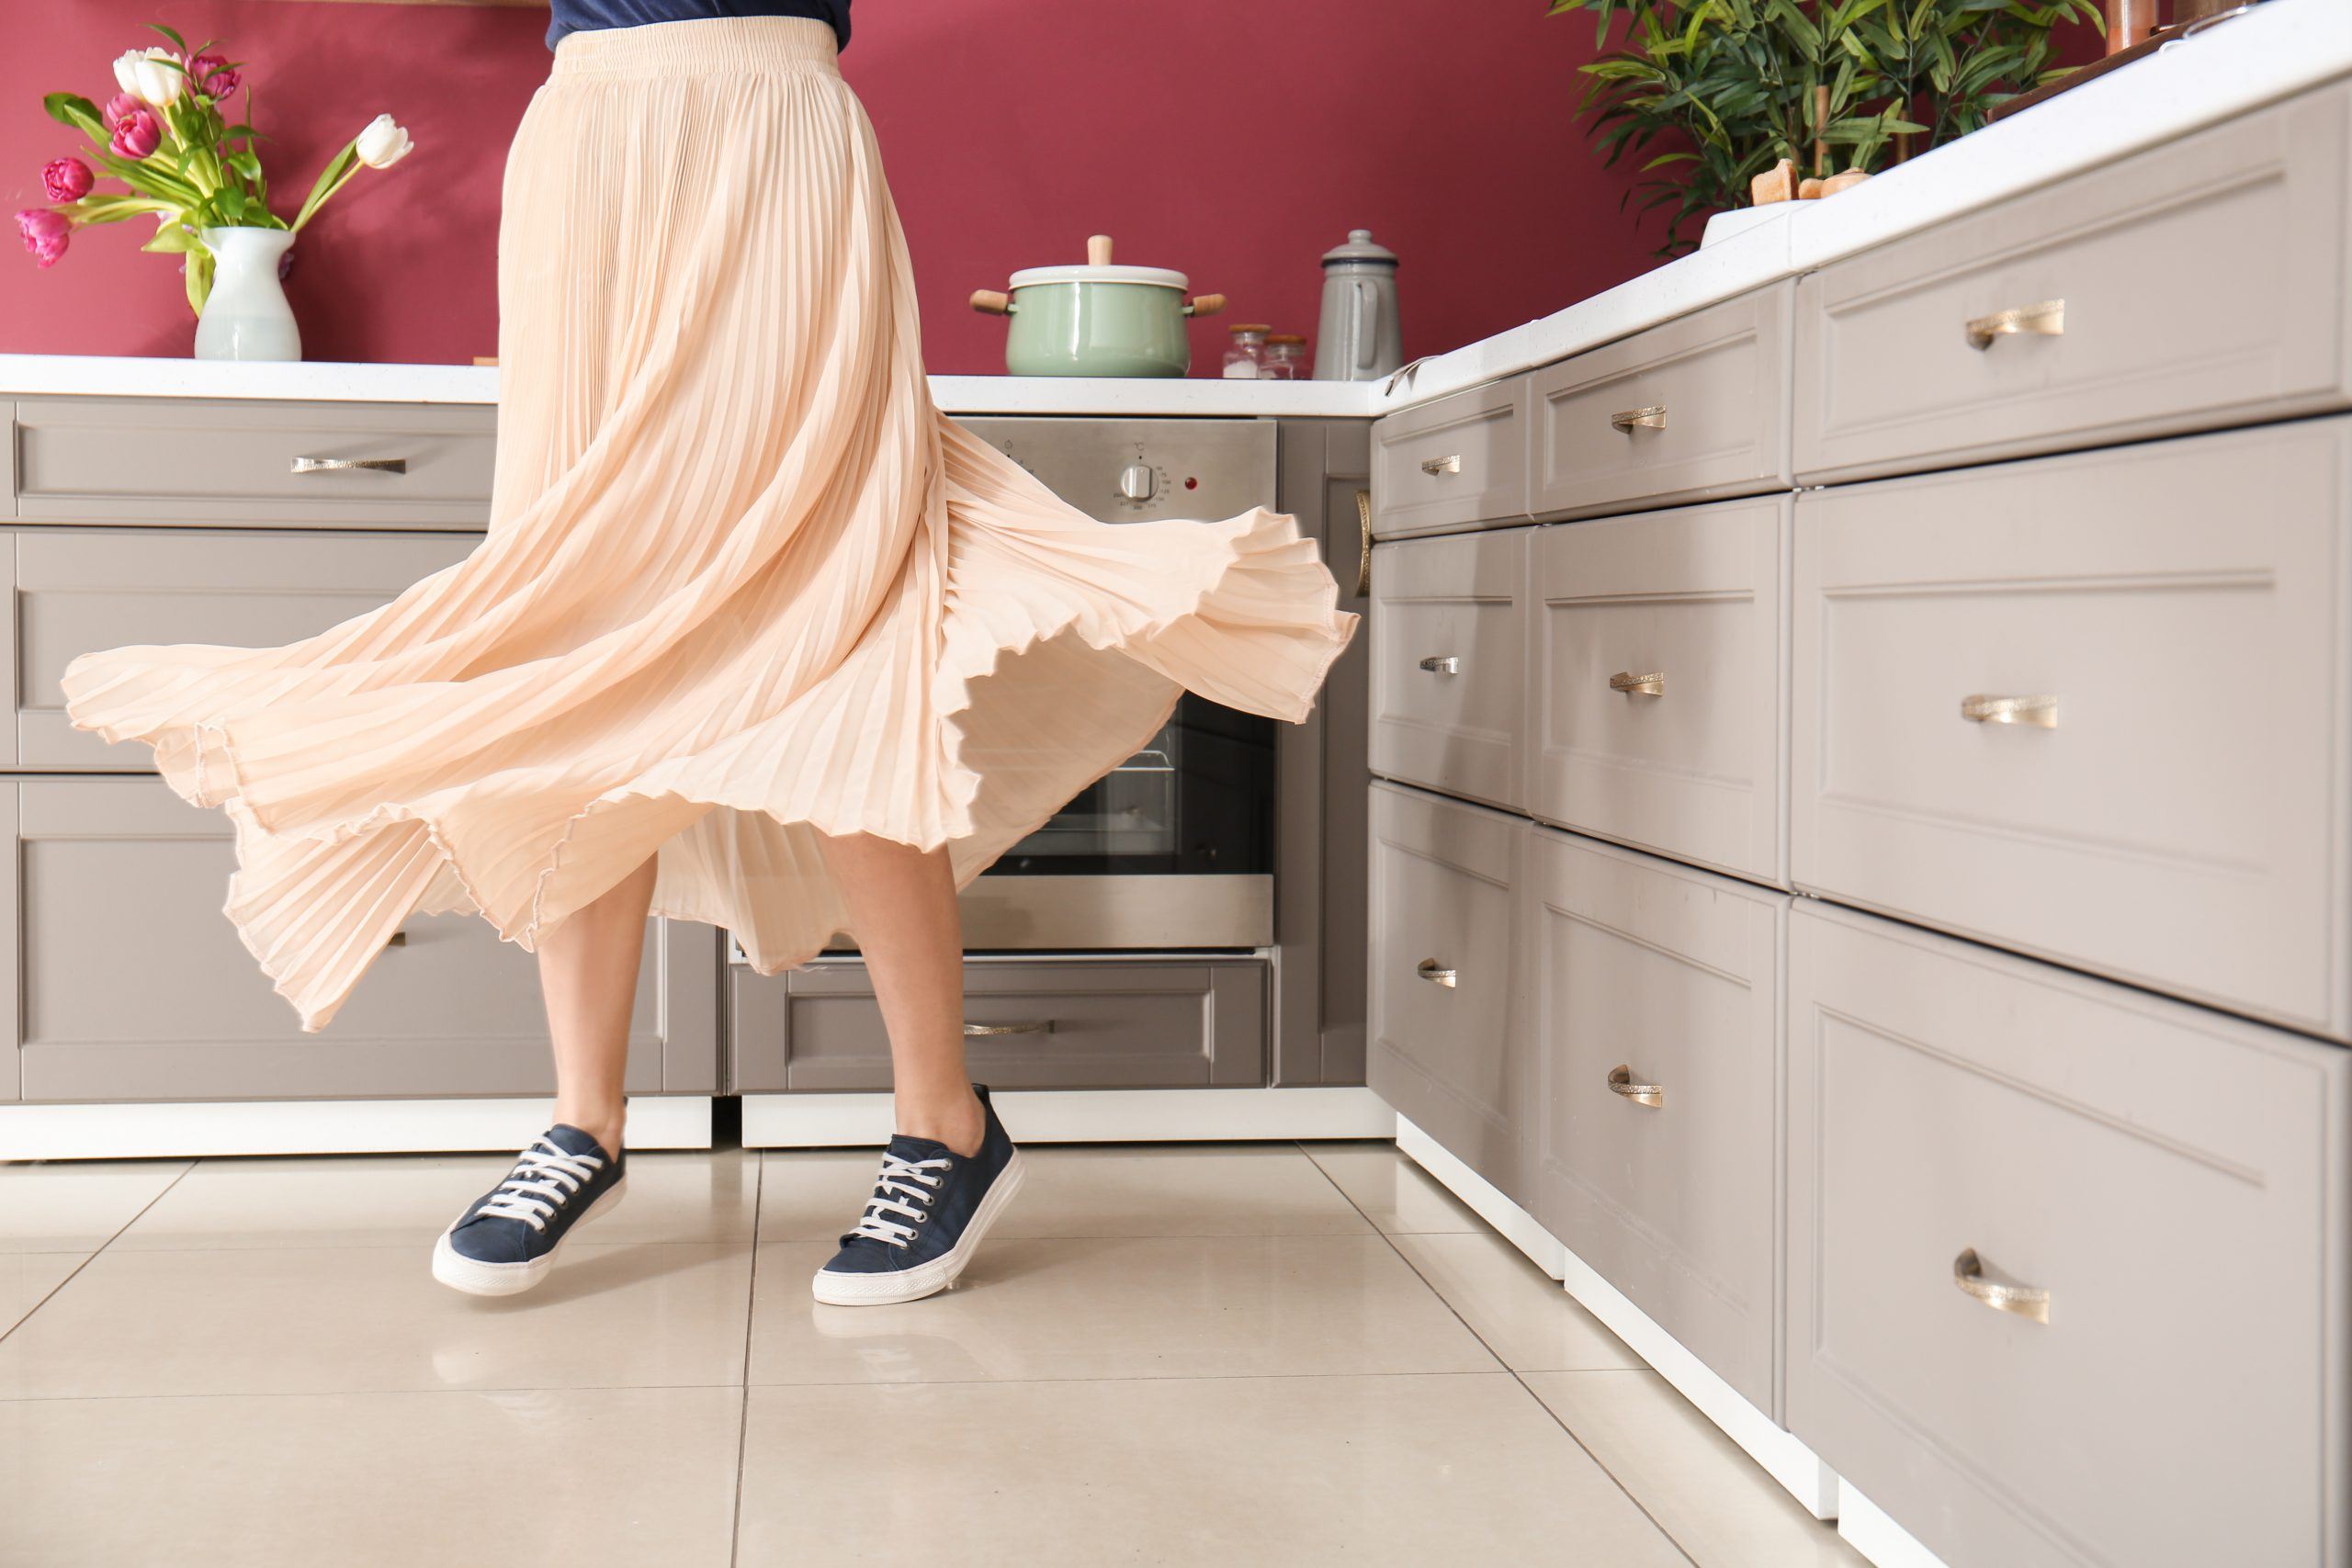 Person in a long skirt and sneakers dances in the kitchen